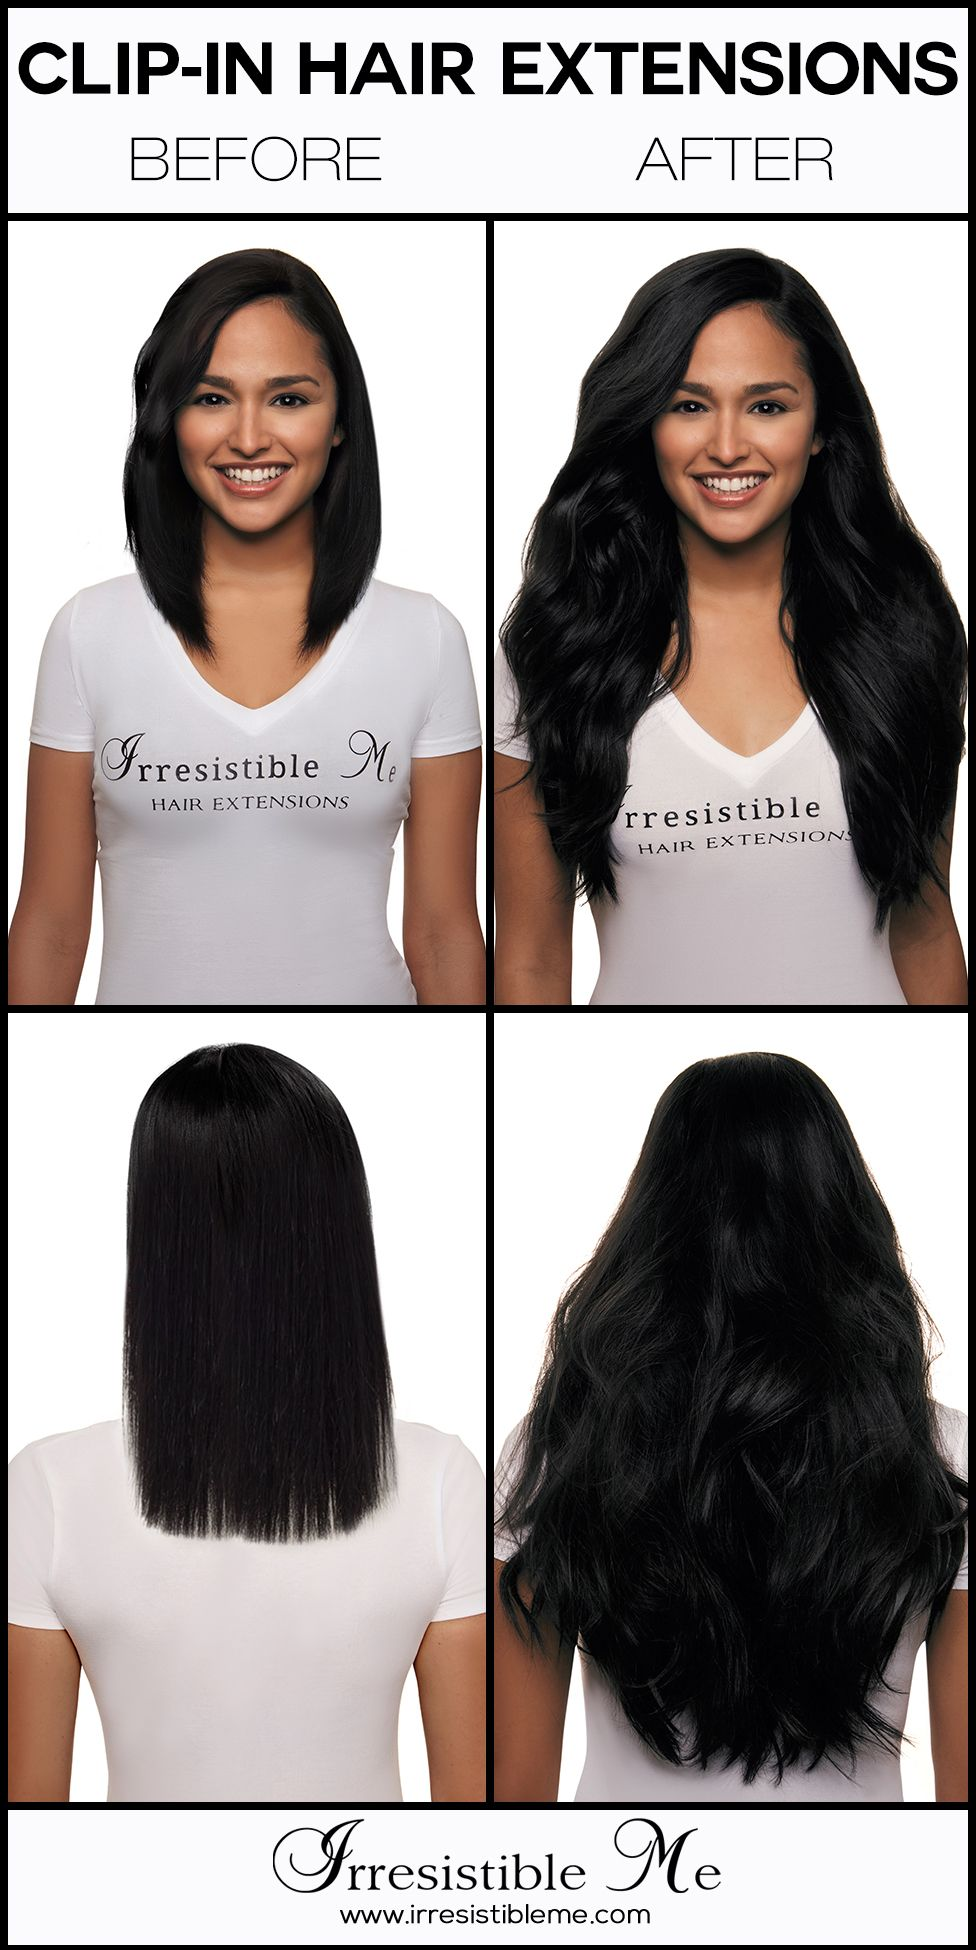 Make A Dramatic Hairstyle Change With Irresistible Me 100 Human Remy Clip In Hair Extensions You Can Add Clip In Hair Extensions Cool Hairstyles Hair Styles